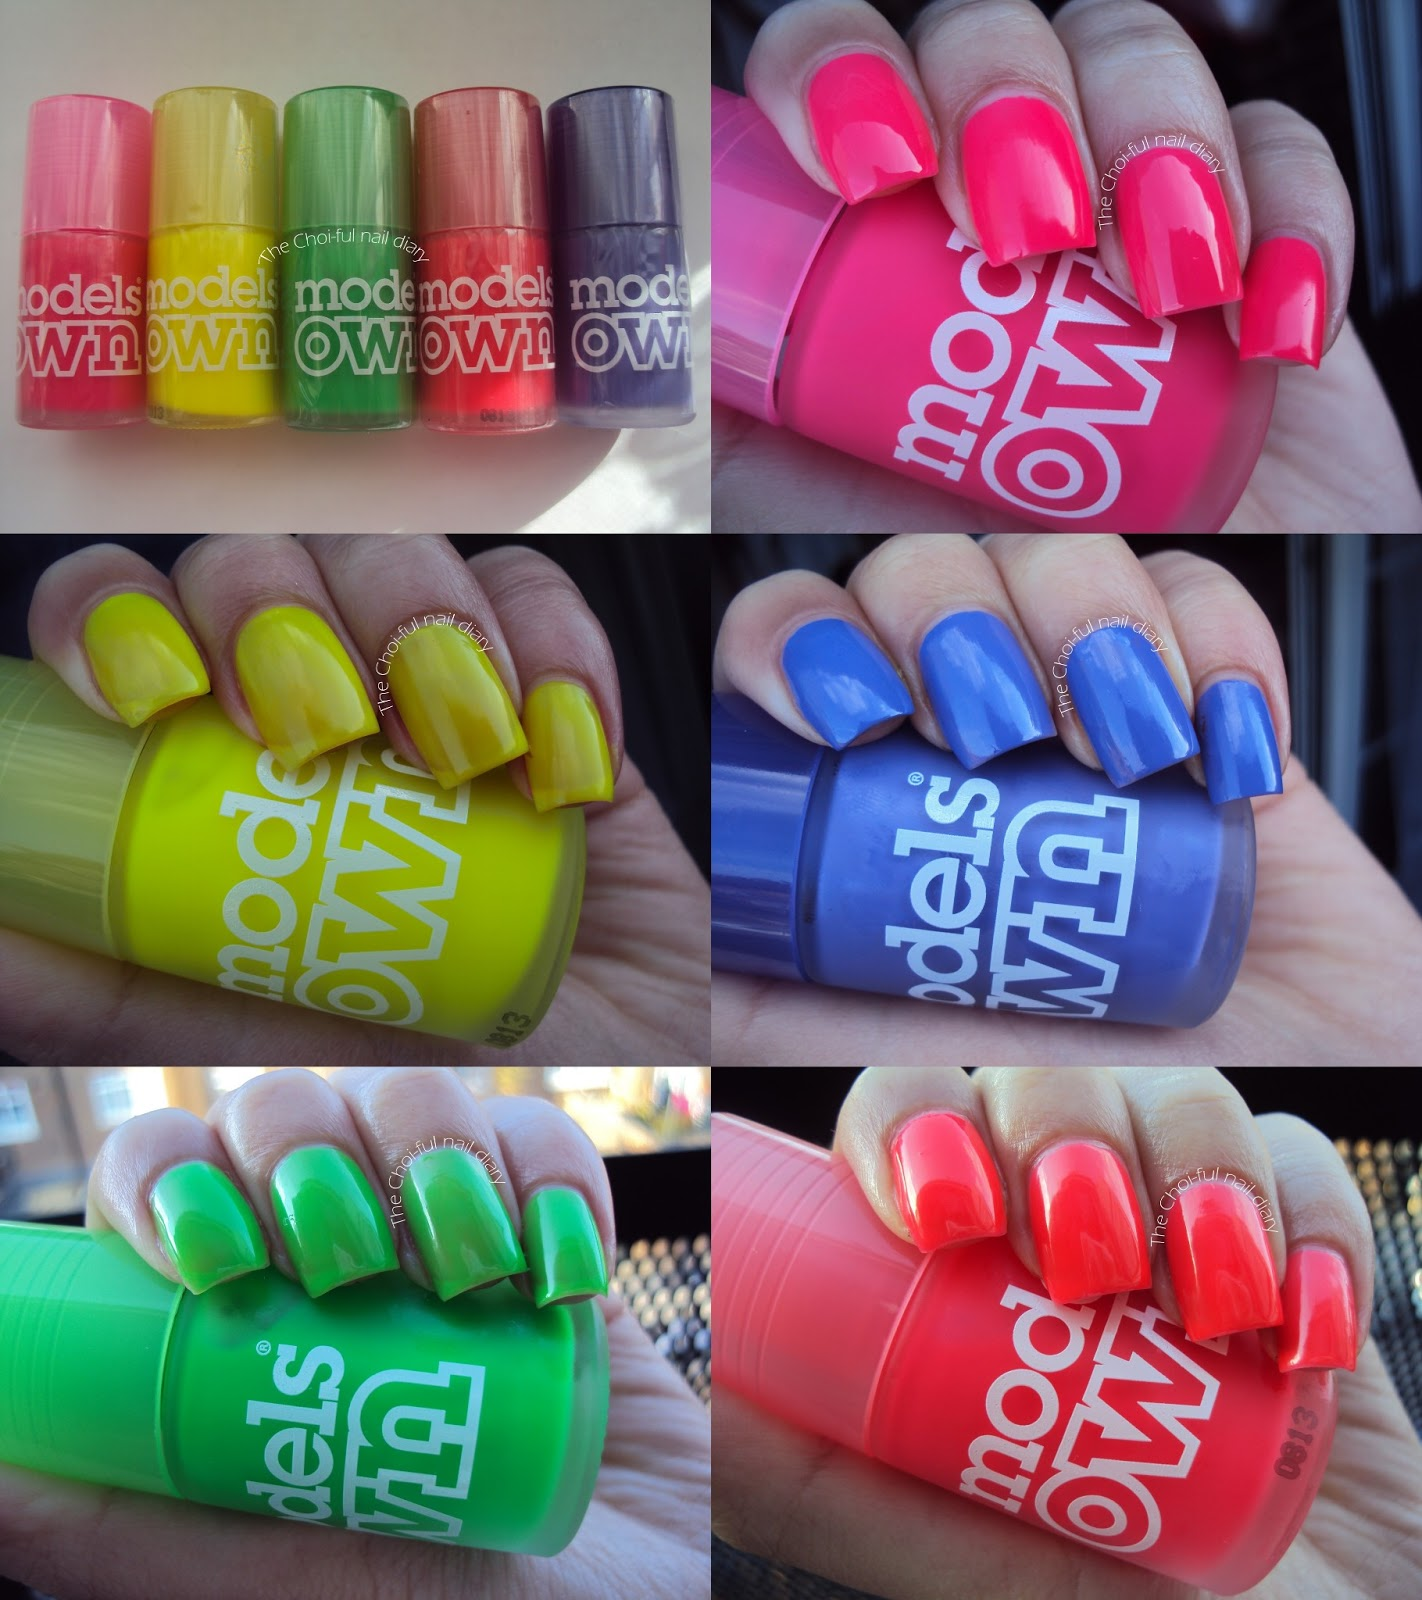 Models own Ice neon collection review and swatches (Picture heavy ...